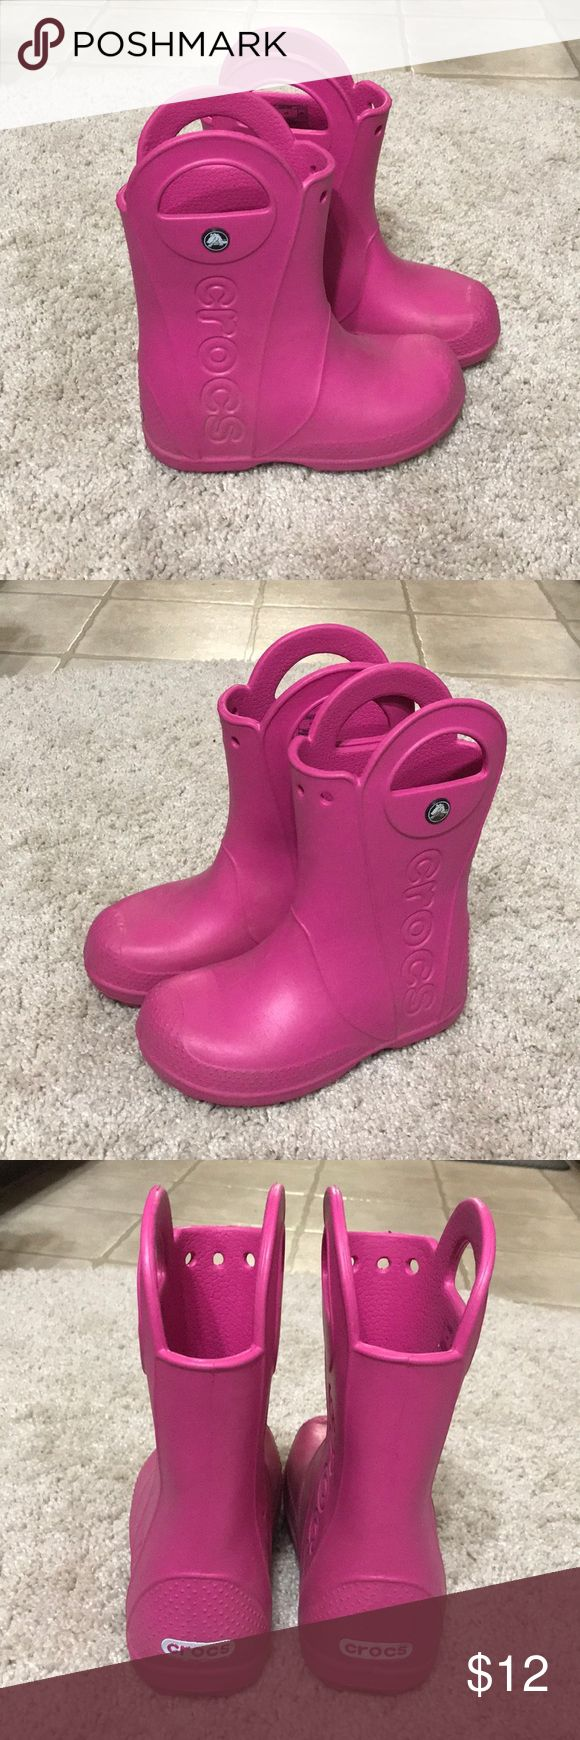 Pink Crocs Rain Boots Only worn once!!! Great boots, very cute! CROCS Shoes Rain & Snow Boots